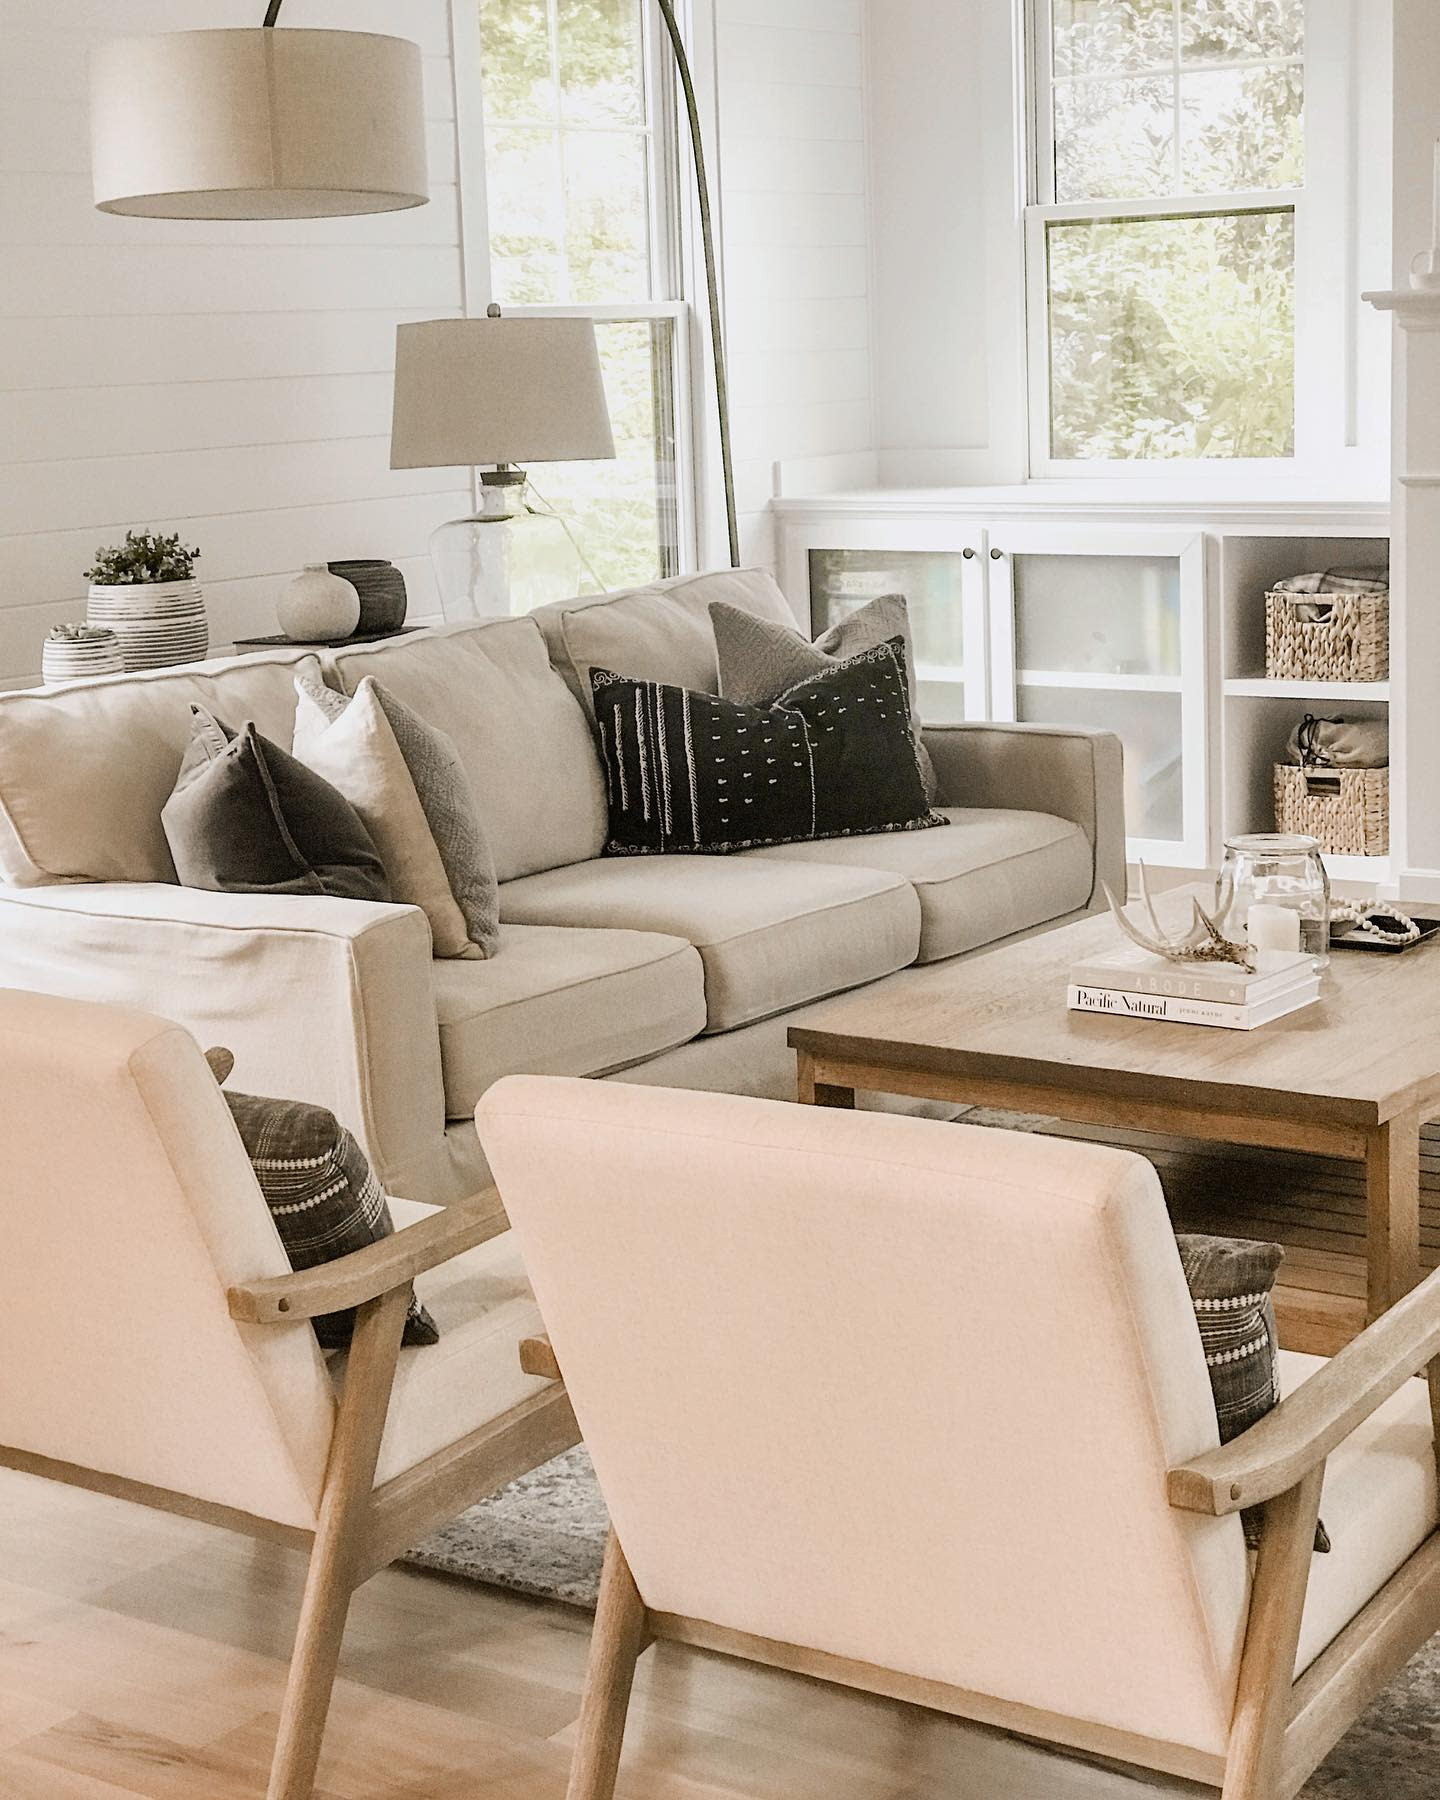 Modern Country Living Room Ideas -mindthehygge